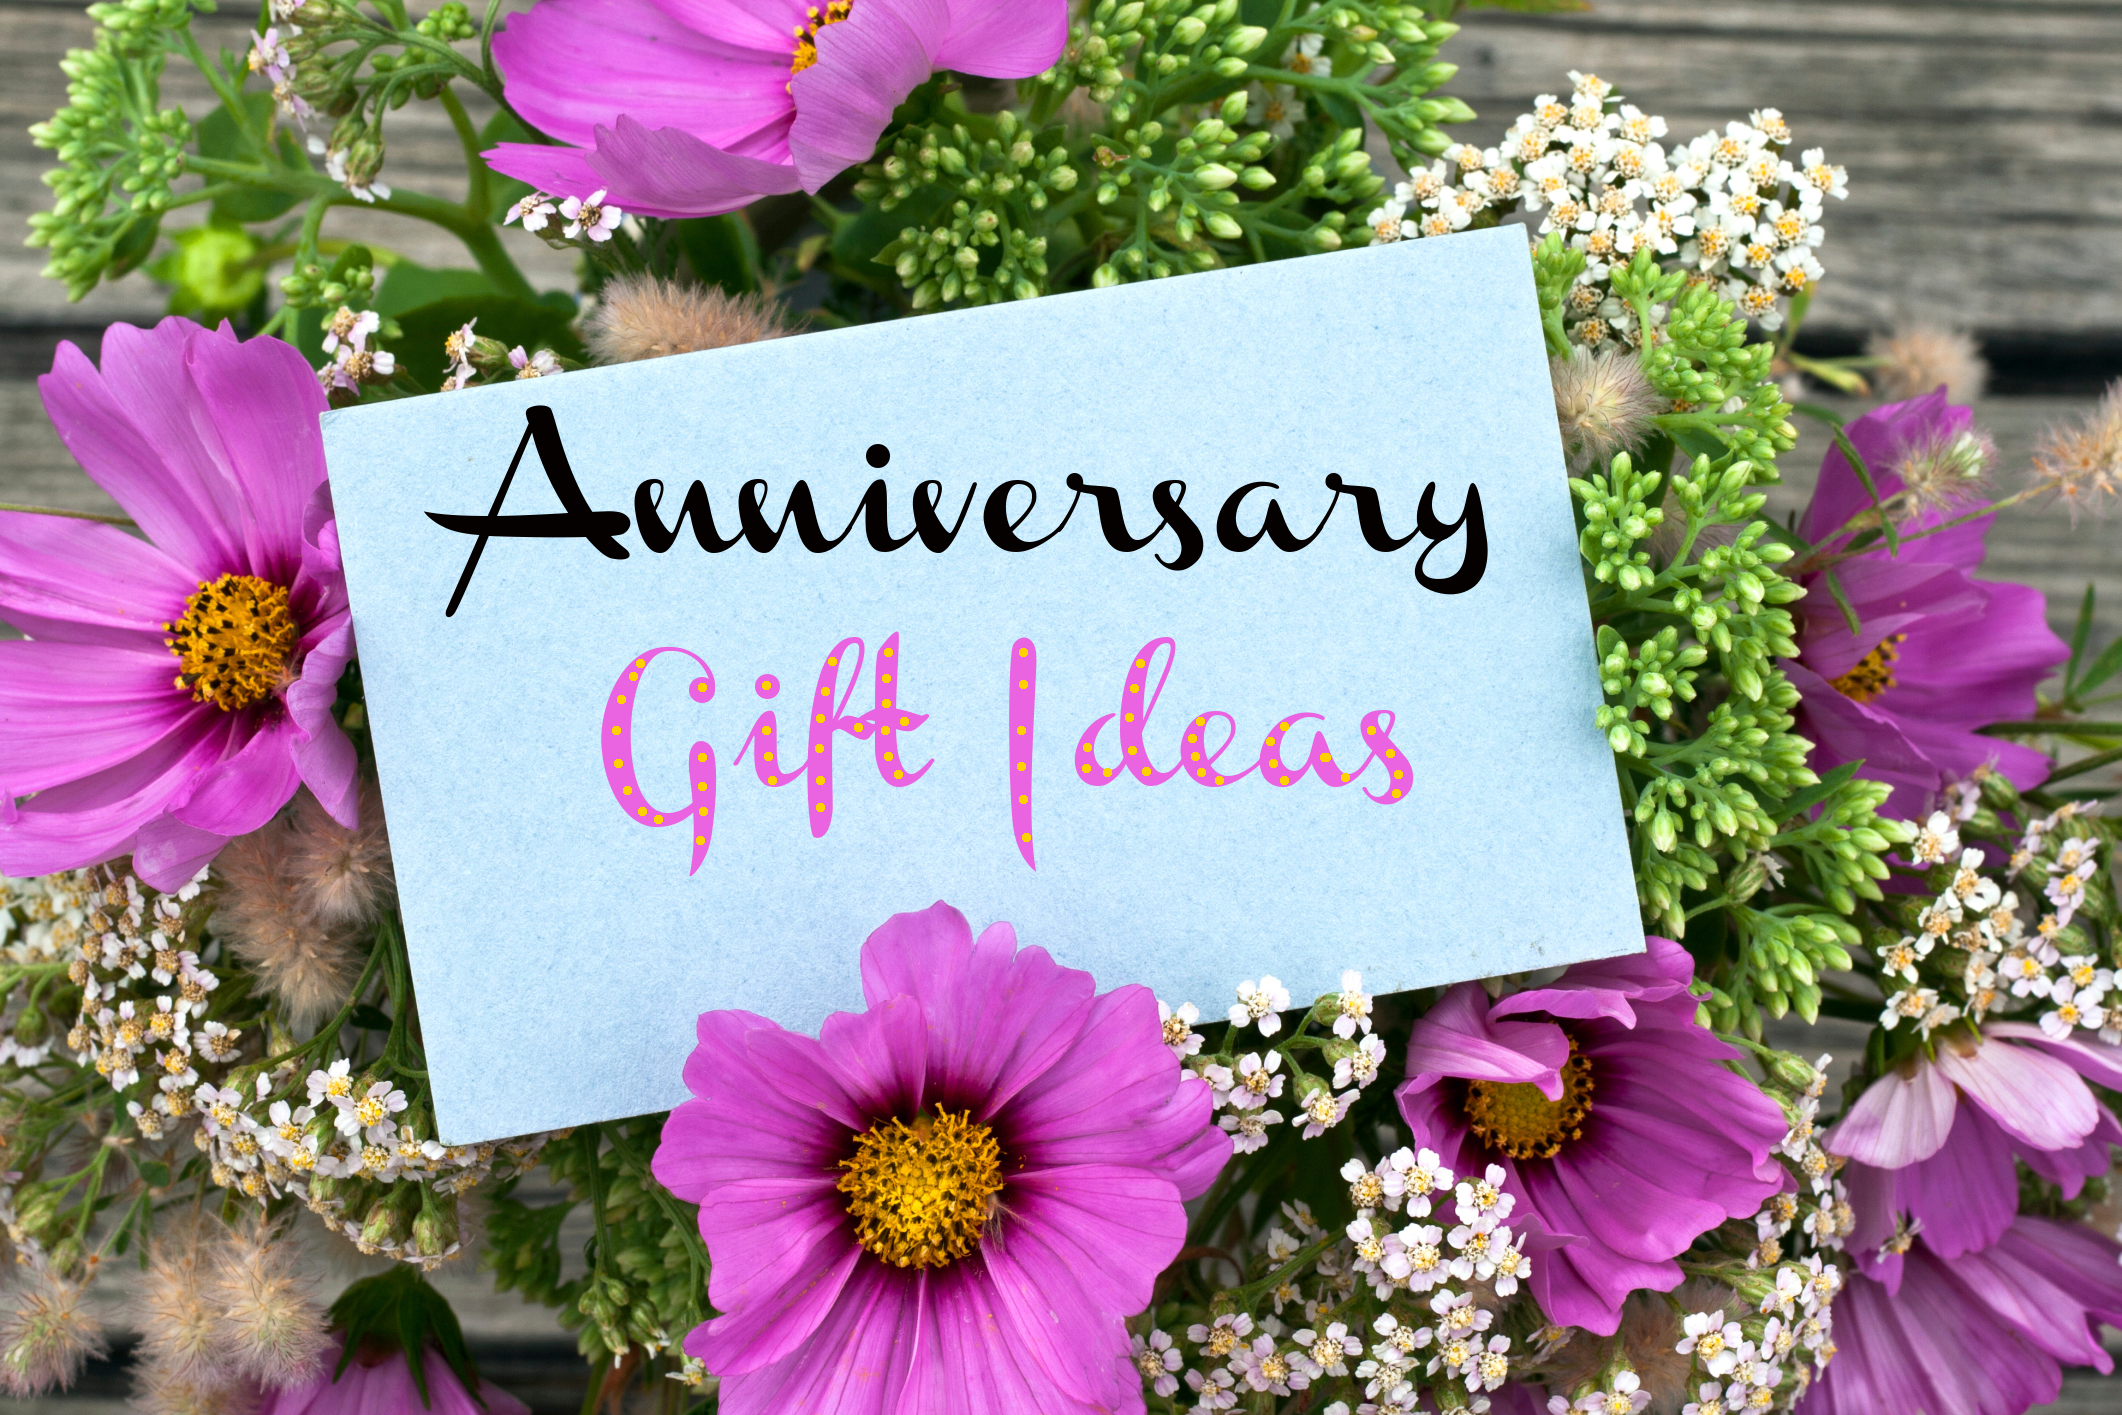 ... Gifts For Men wedding anniversary gifts and years by year pick the